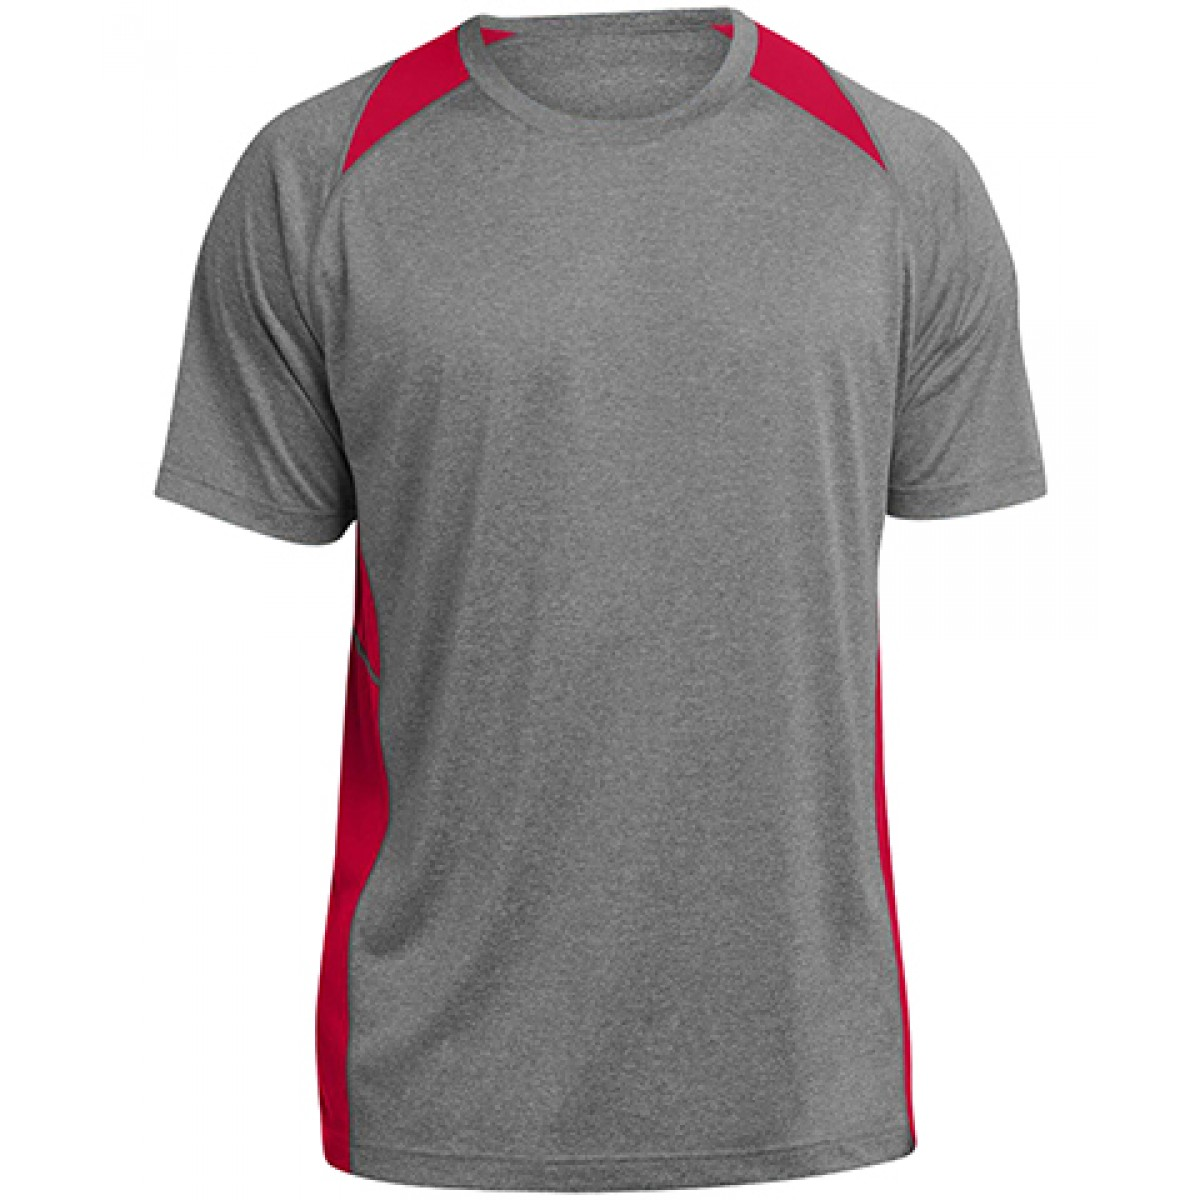 Heather Colorblock Contender™ Tee-Gray/Red-3XL